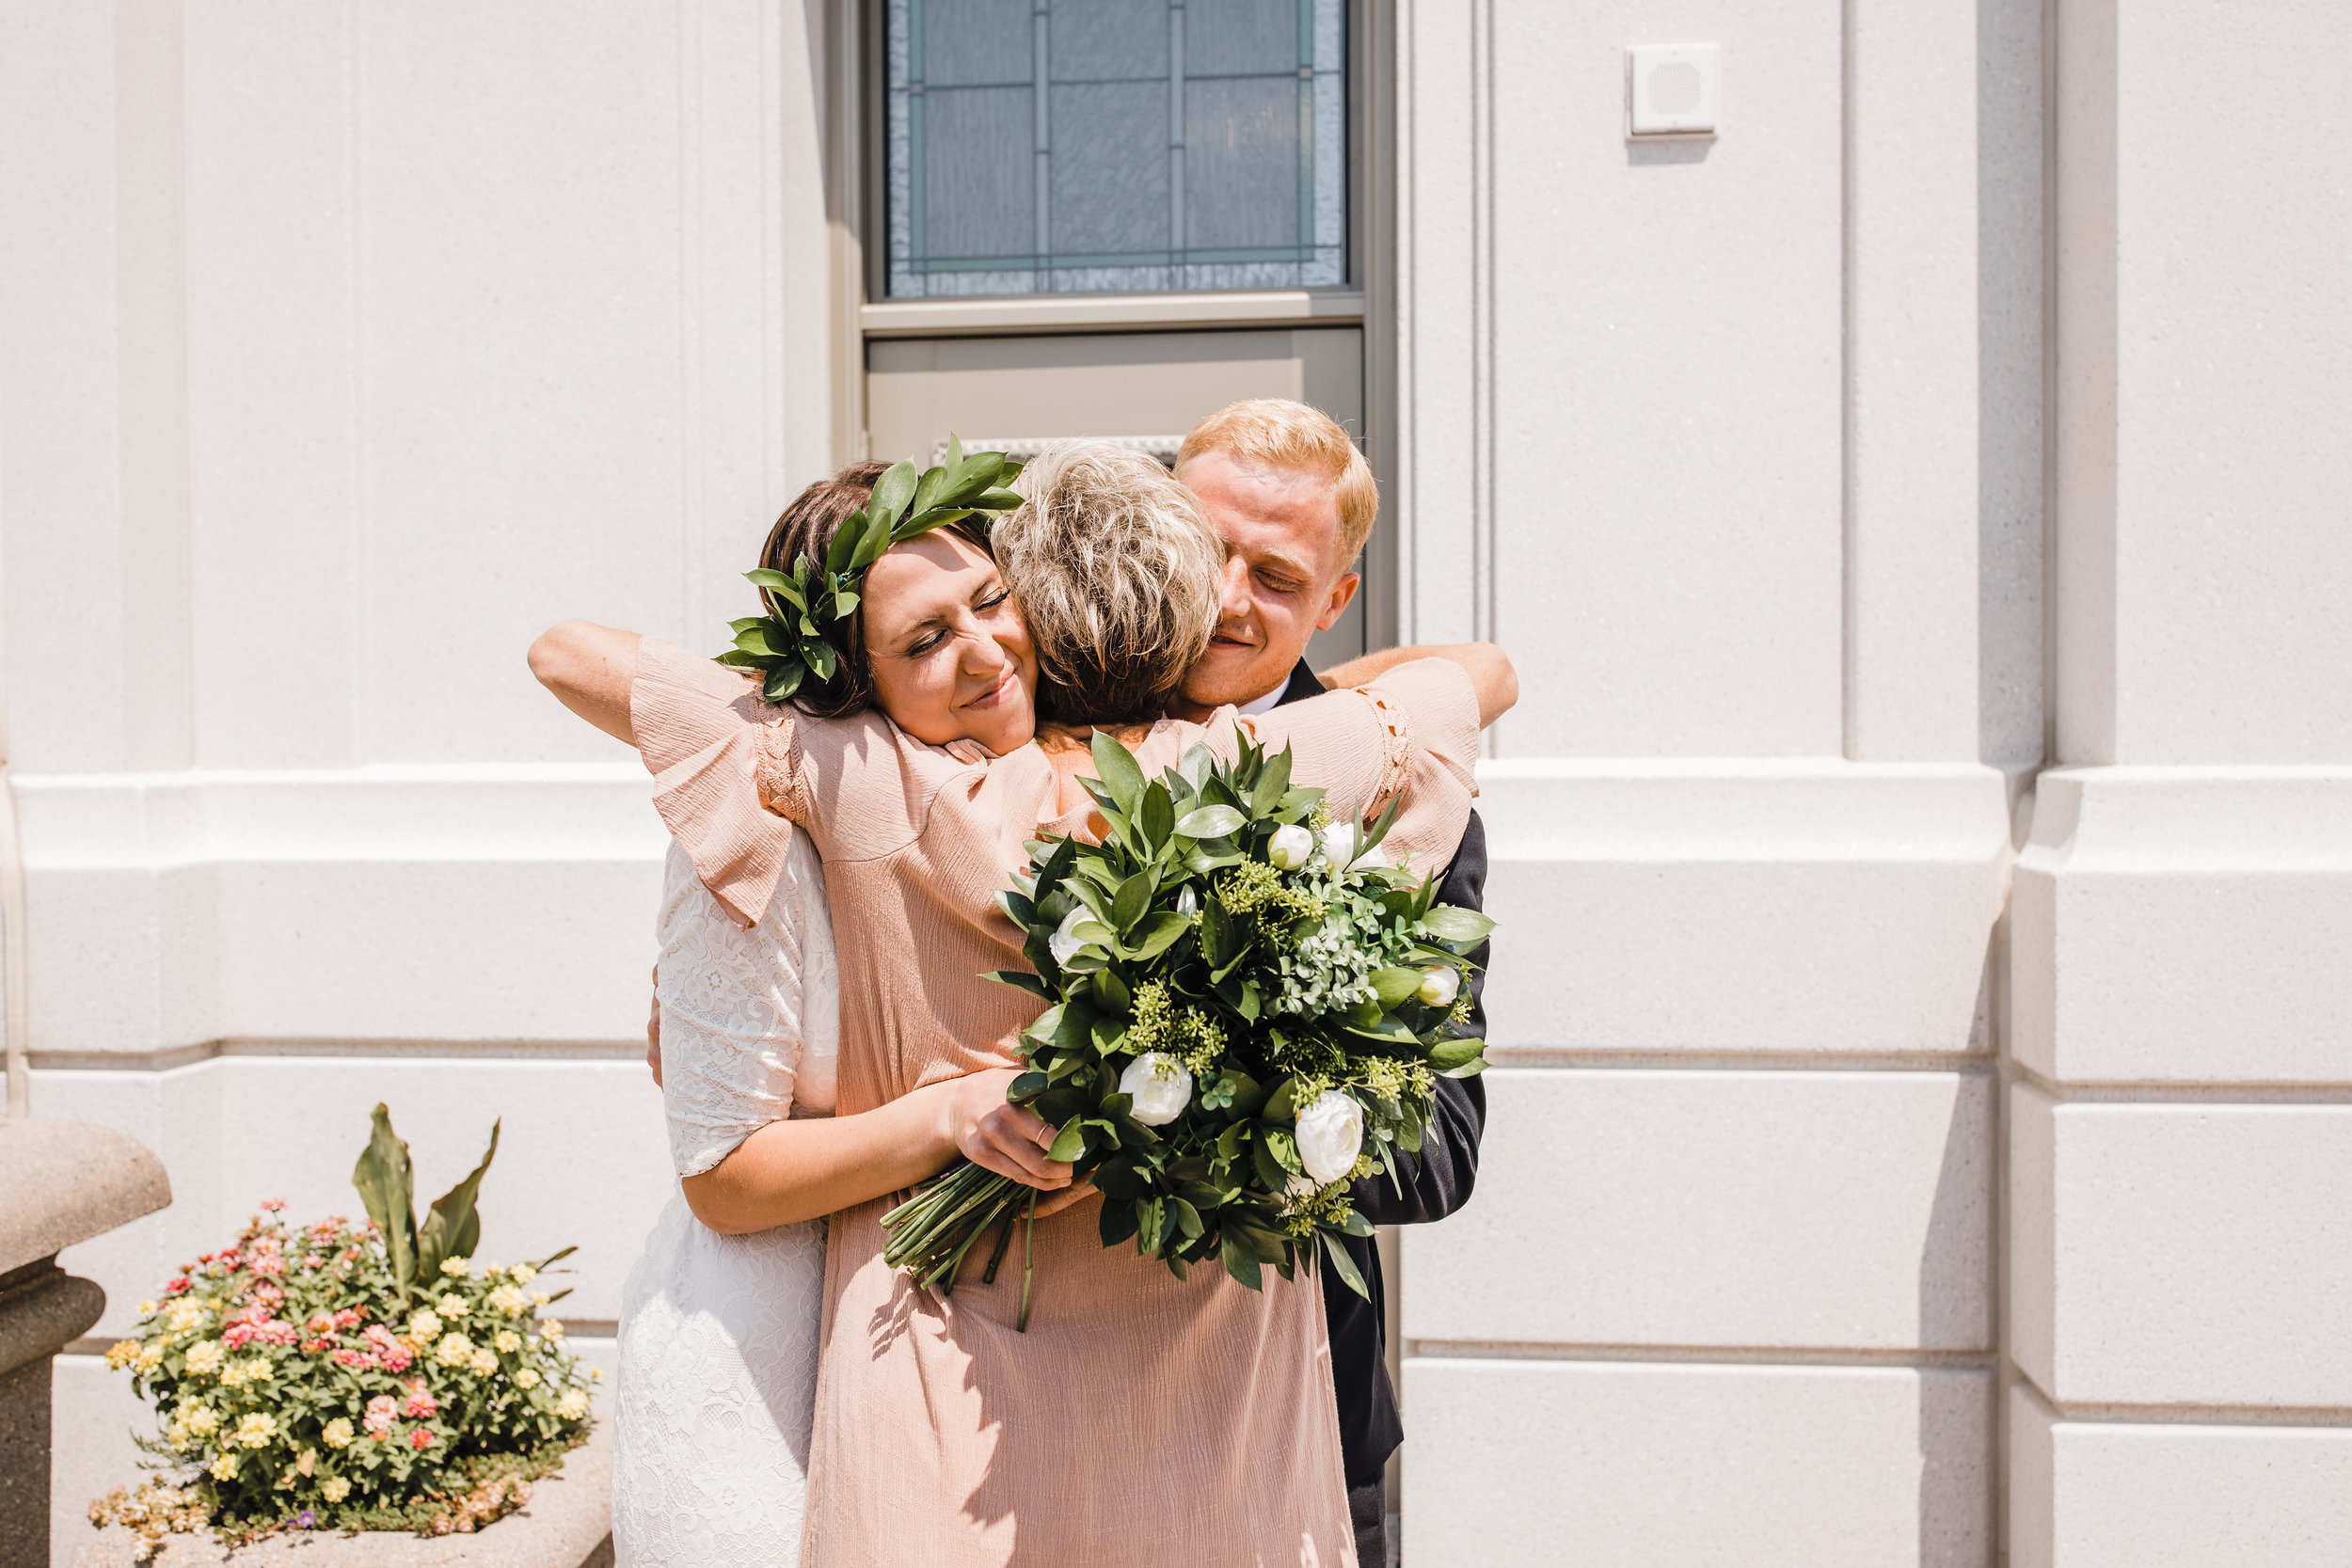 brigham city wedding photographer wedding exit hugging mother in law smiling